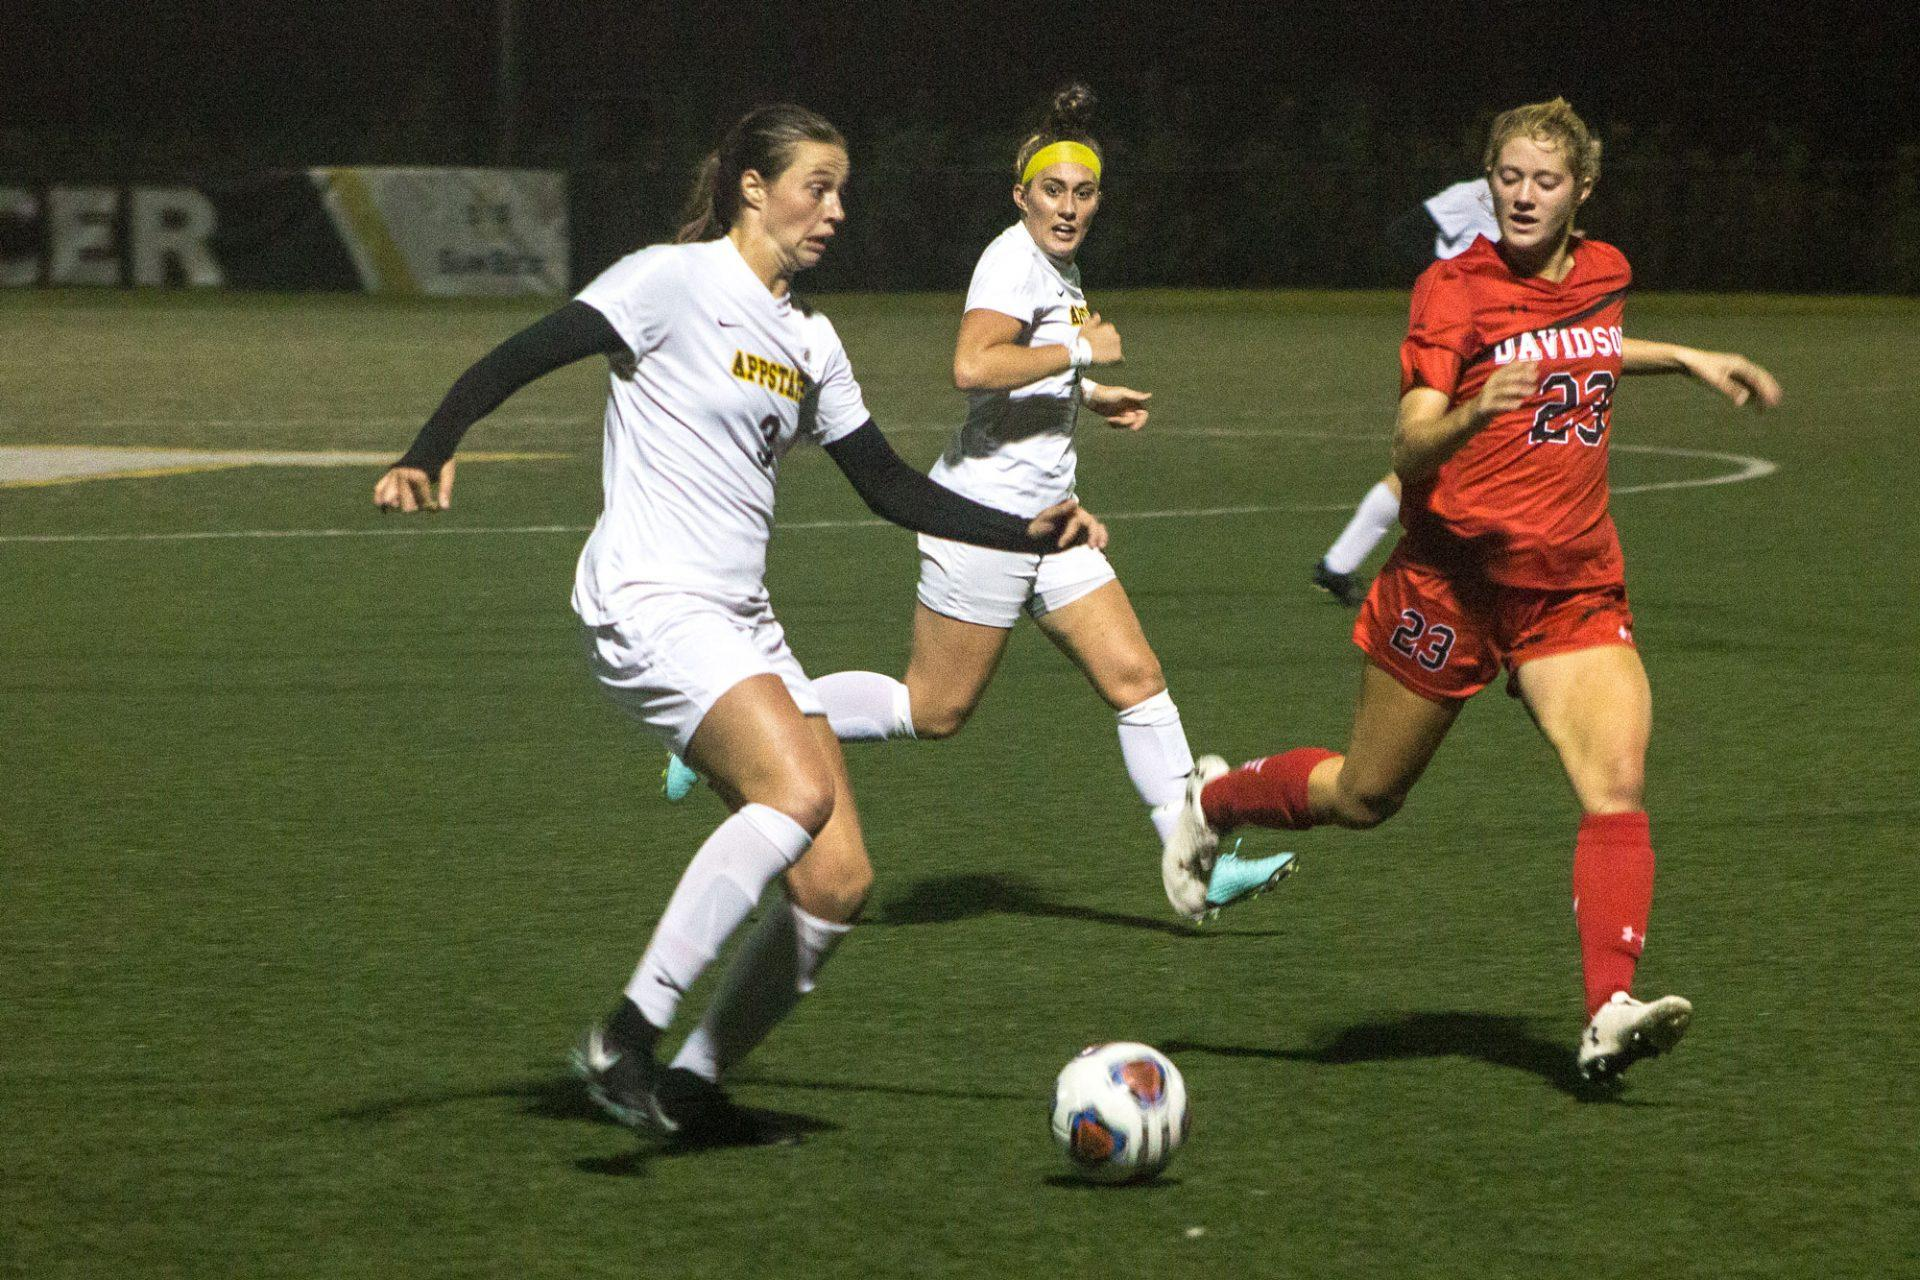 Ava Dawson's two goals lead Mountaineers to first victory